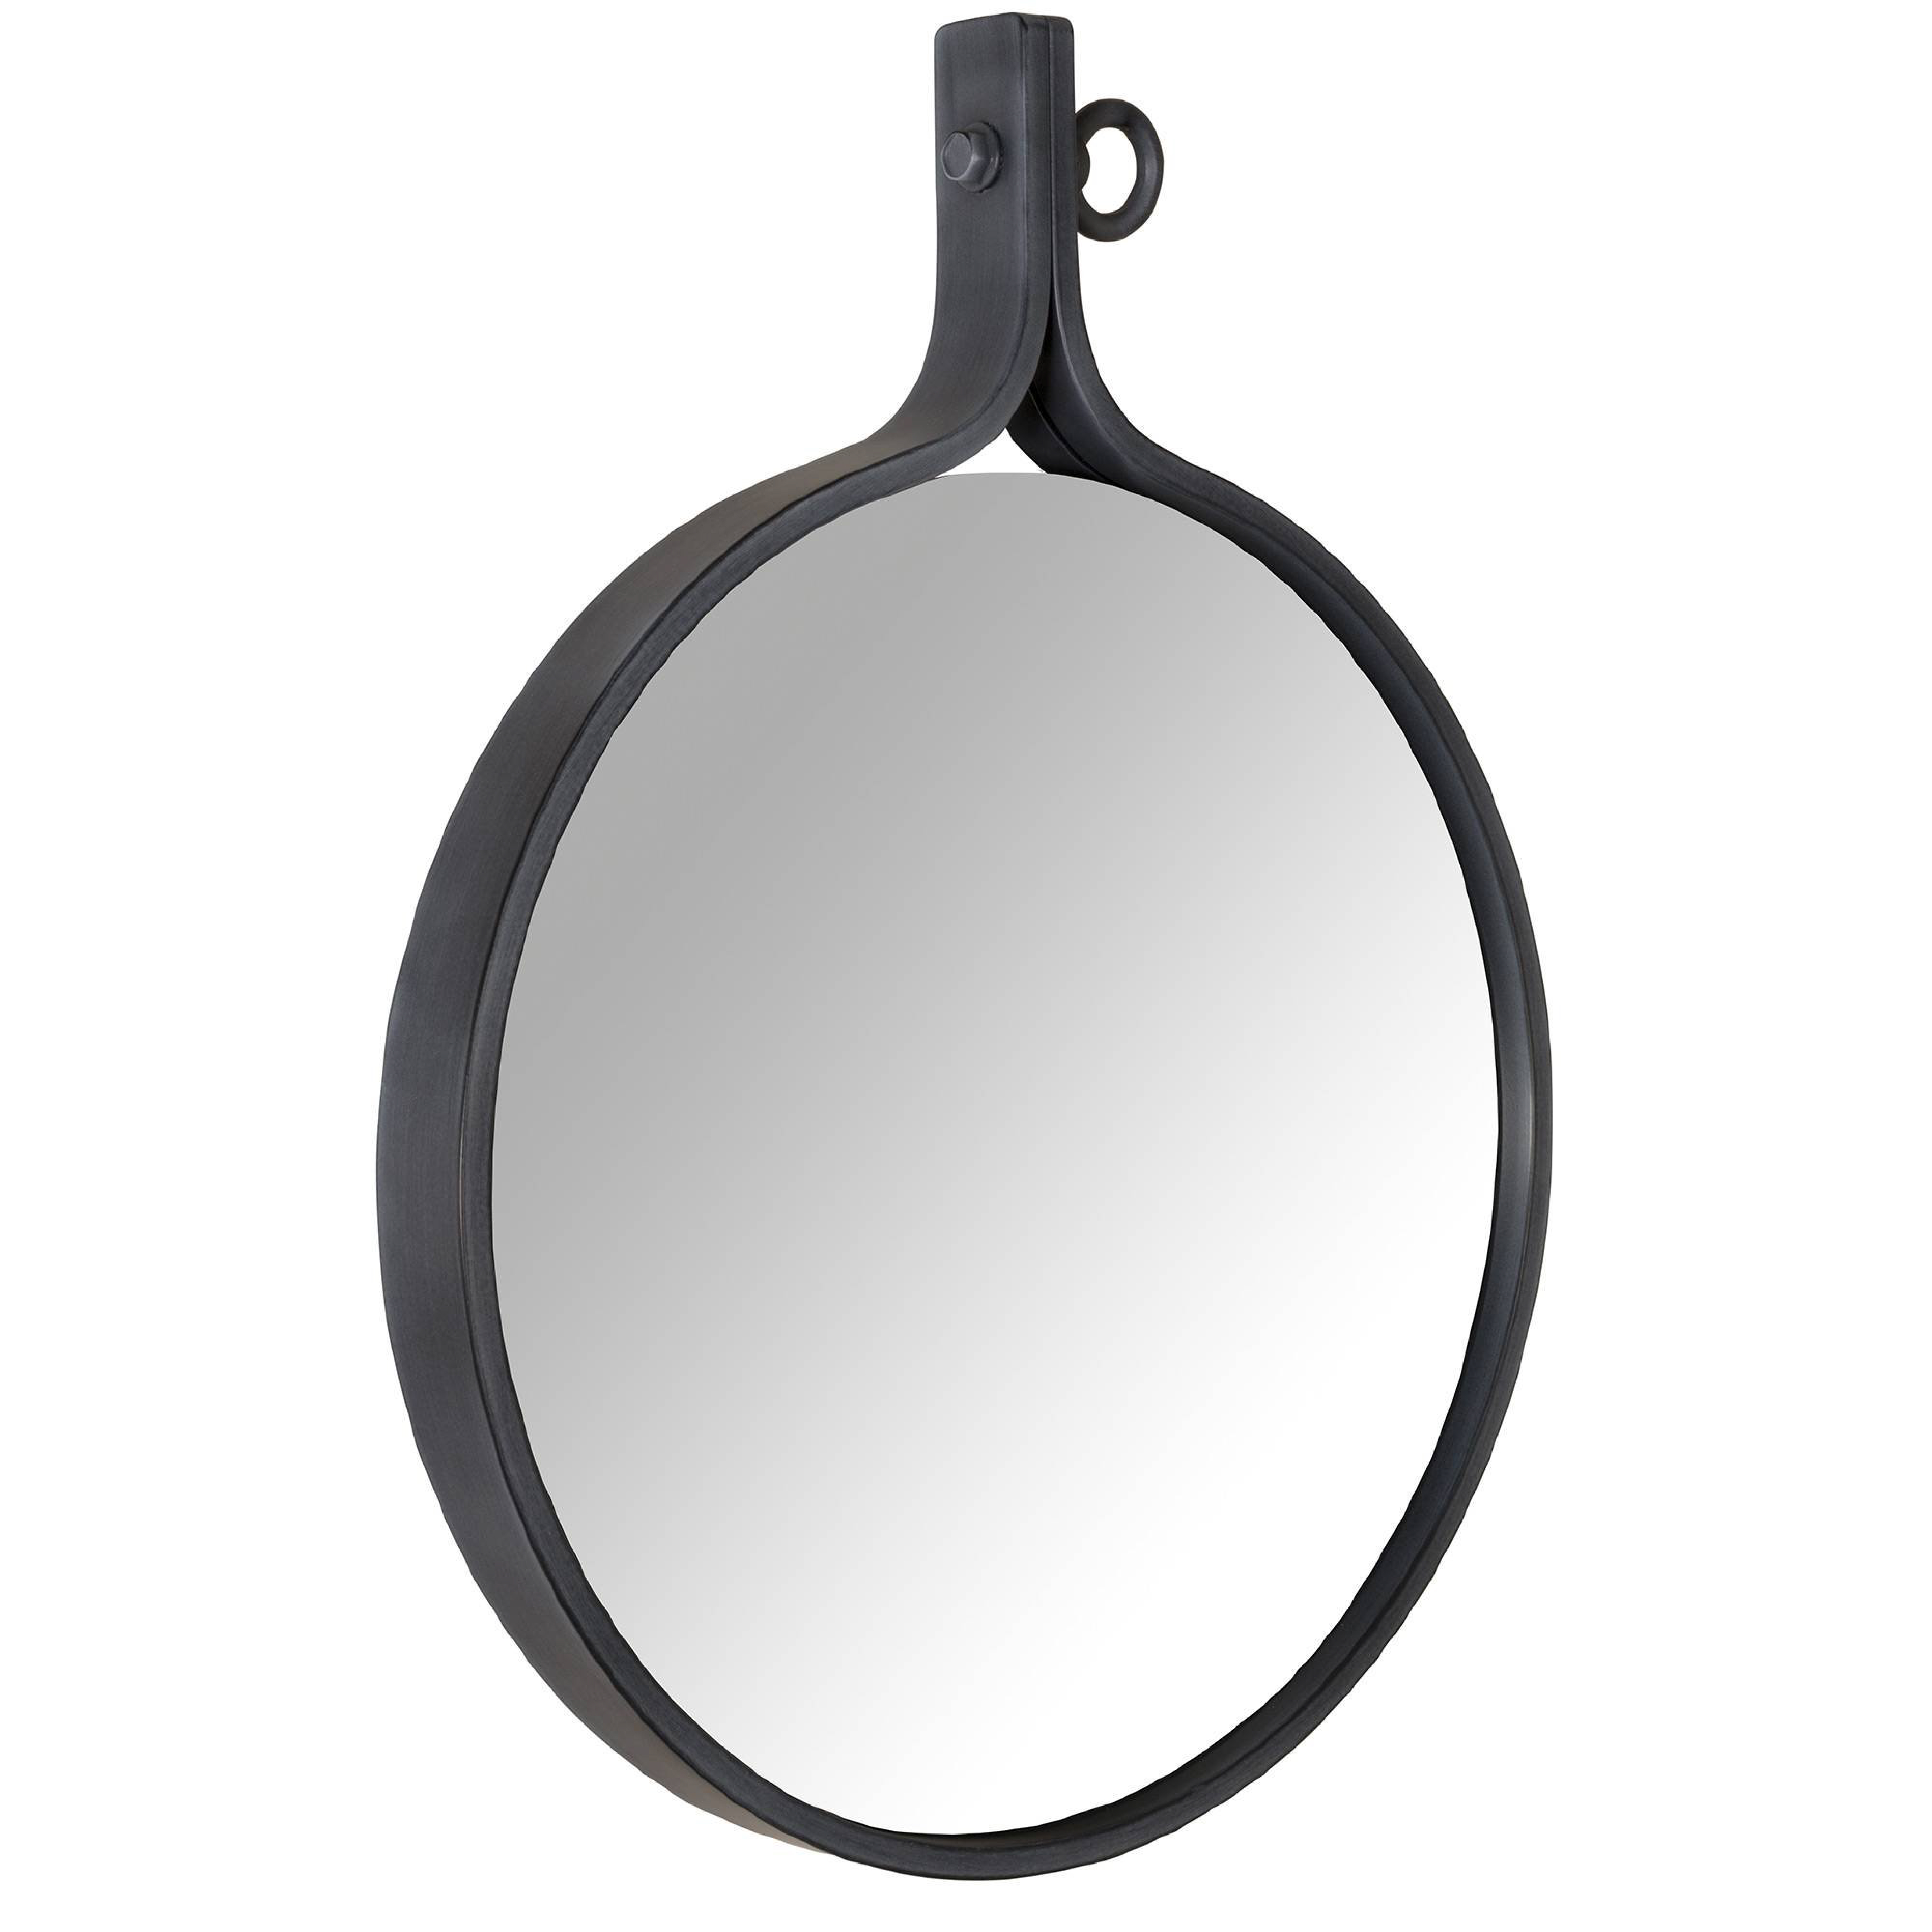 Miroir Attractif Dutchbone sur 3Suisses.fr – 139€